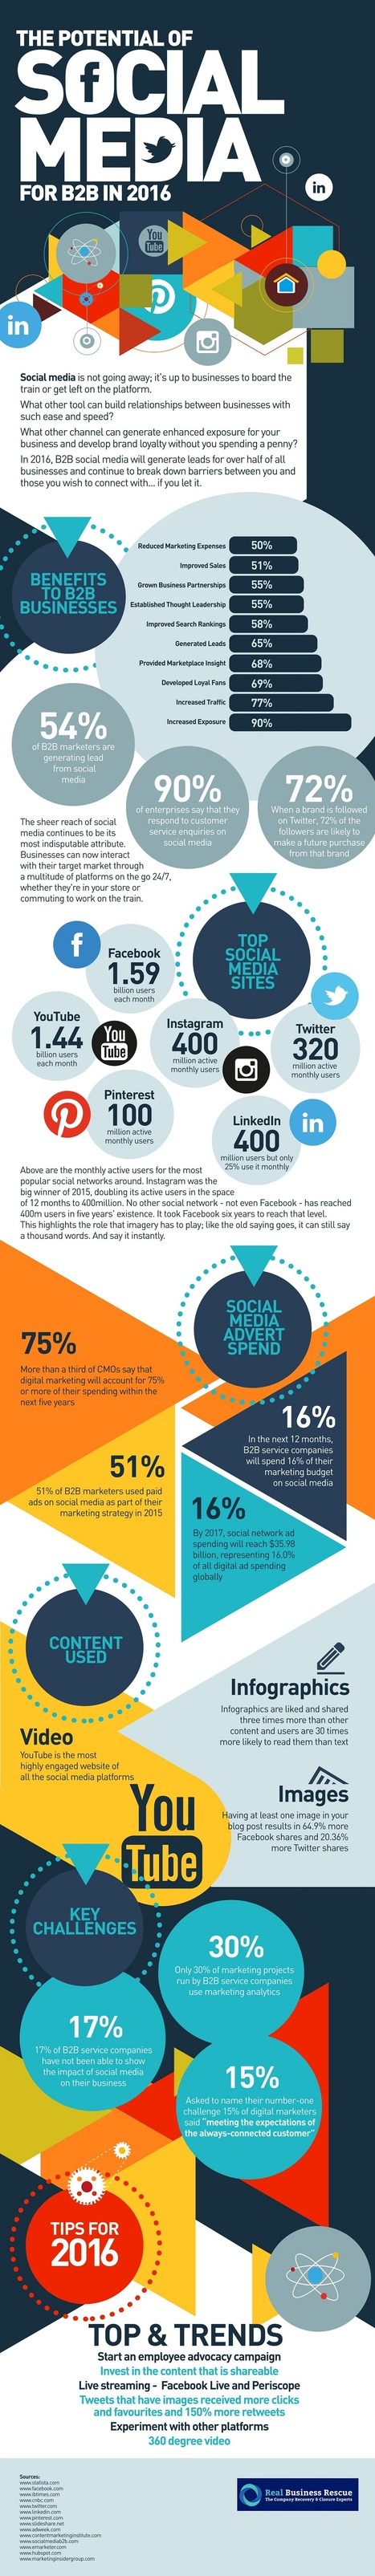 The Potential of Social Media for B2B in 2016 #Infographic | social media useful  tools | Scoop.it